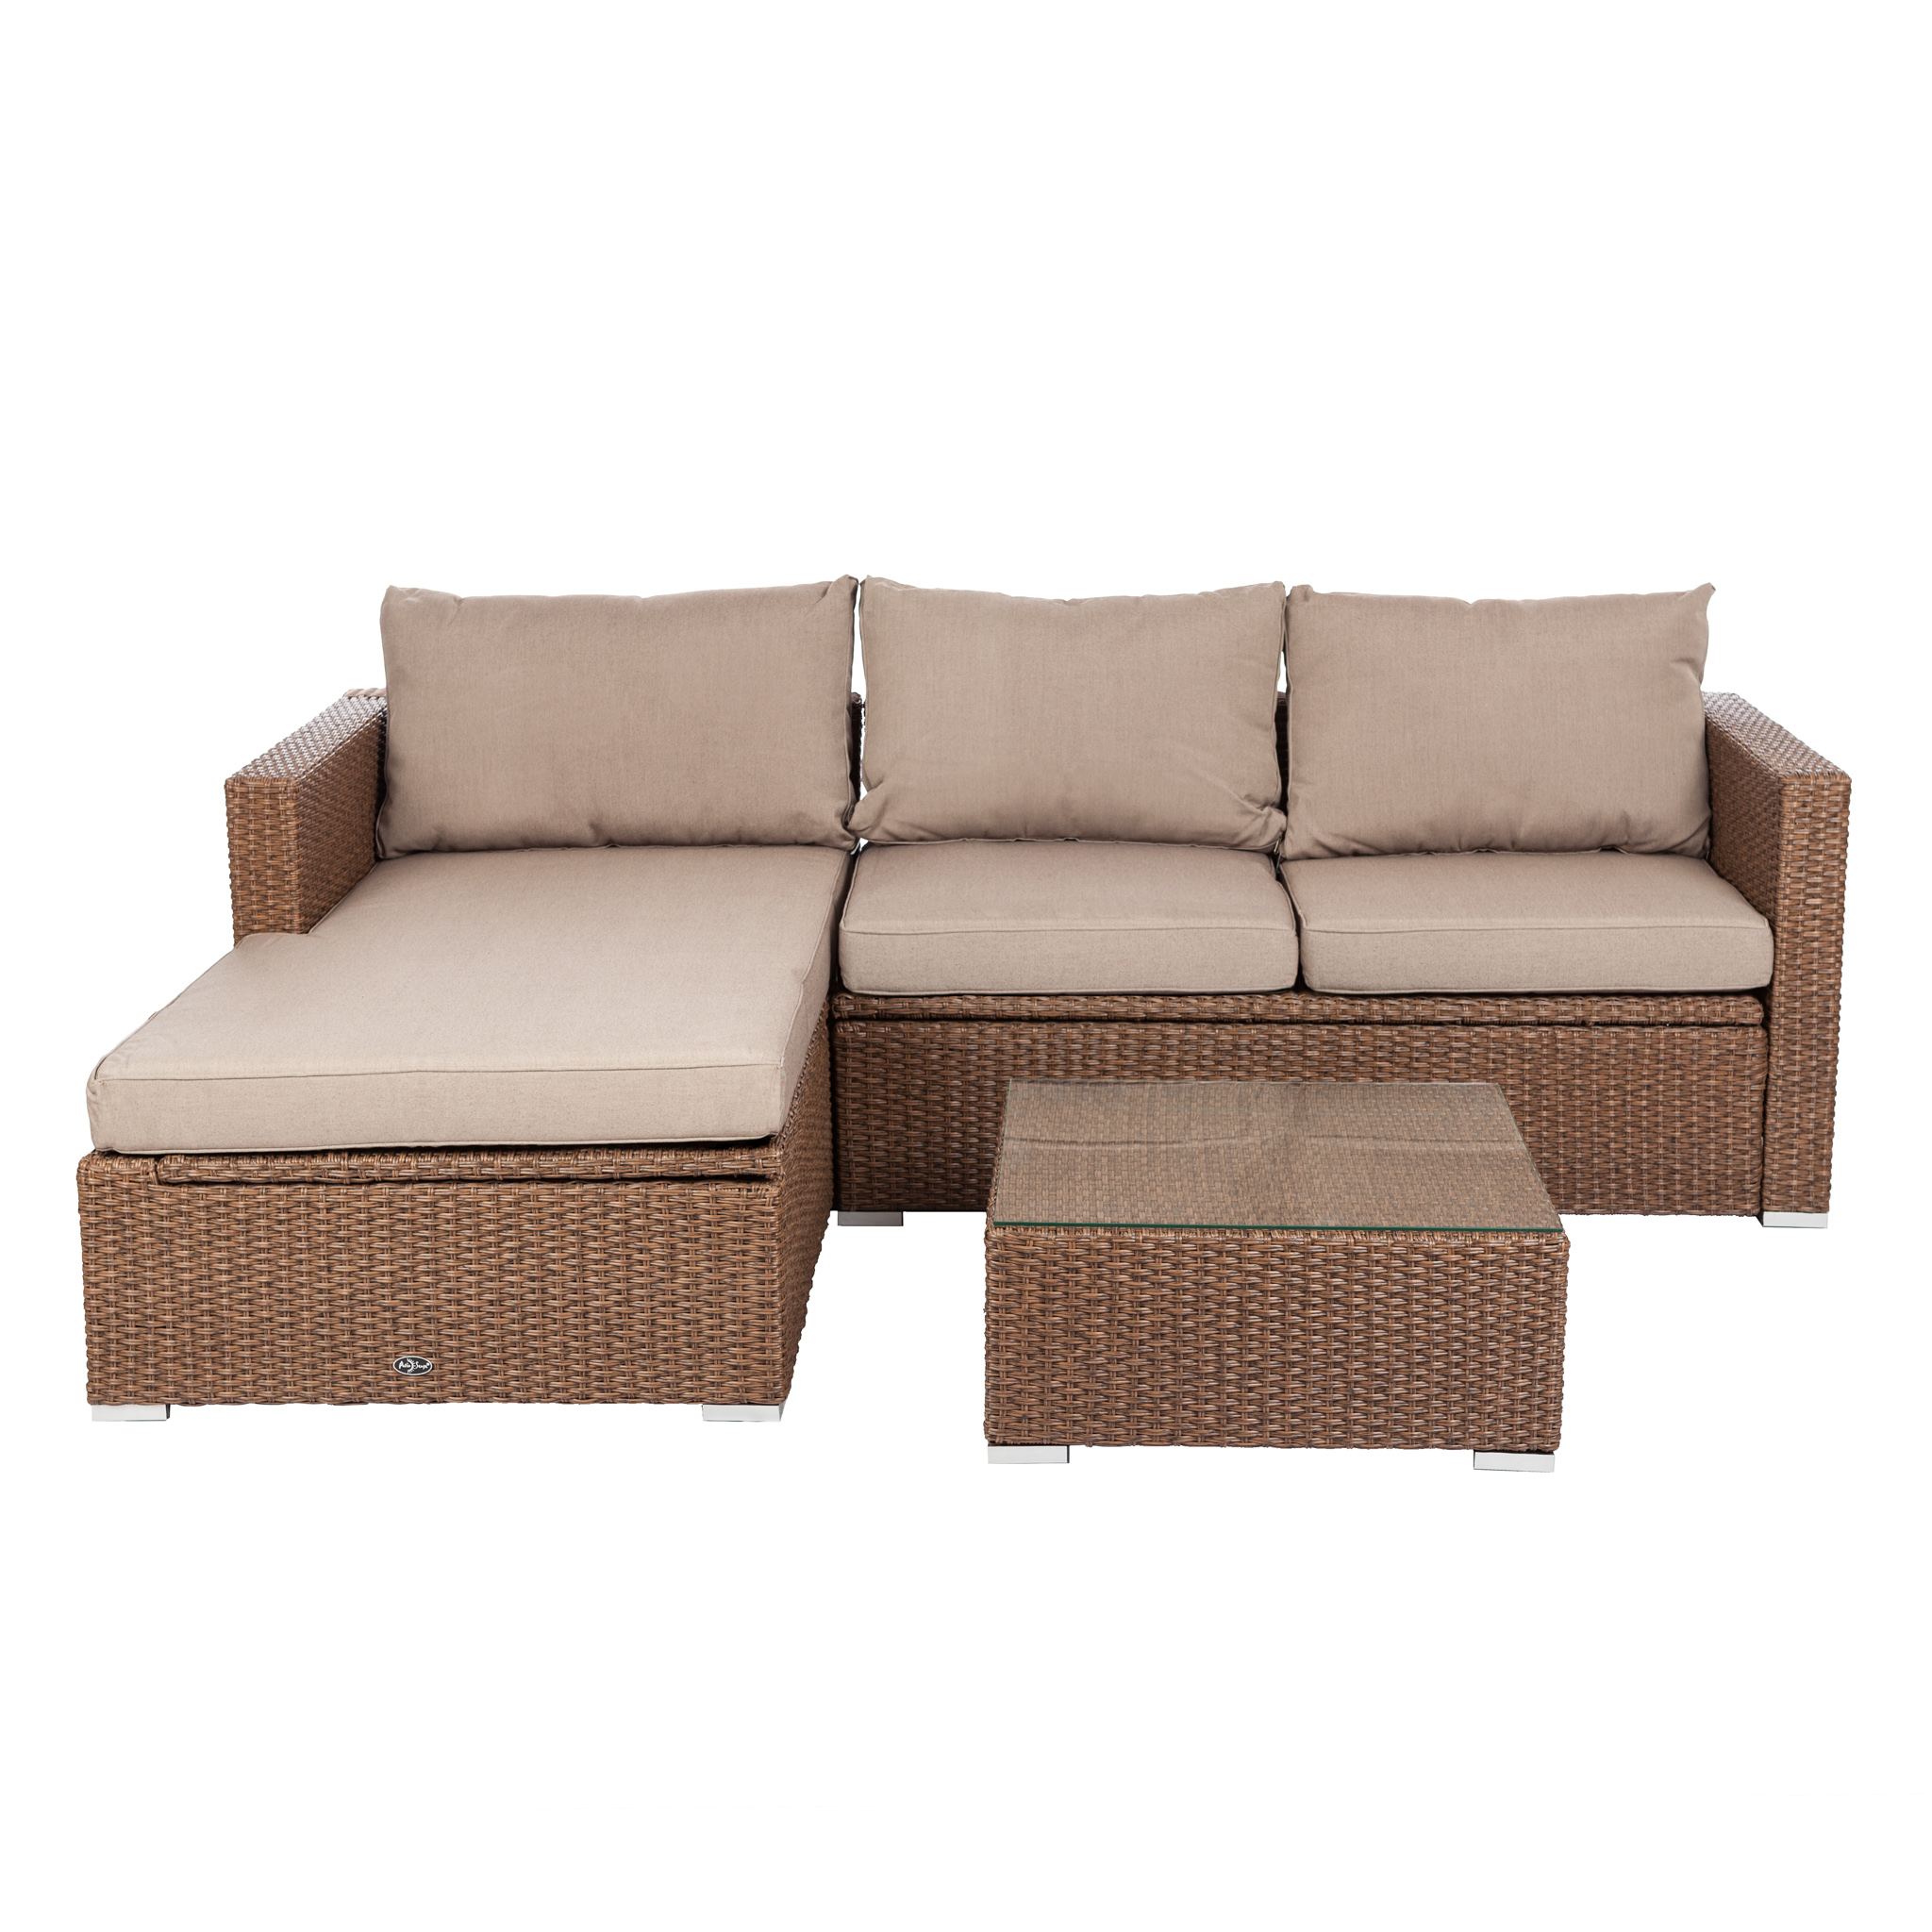 montclair all weather wicker sectional sofa set savoy costco tristano well traveled living